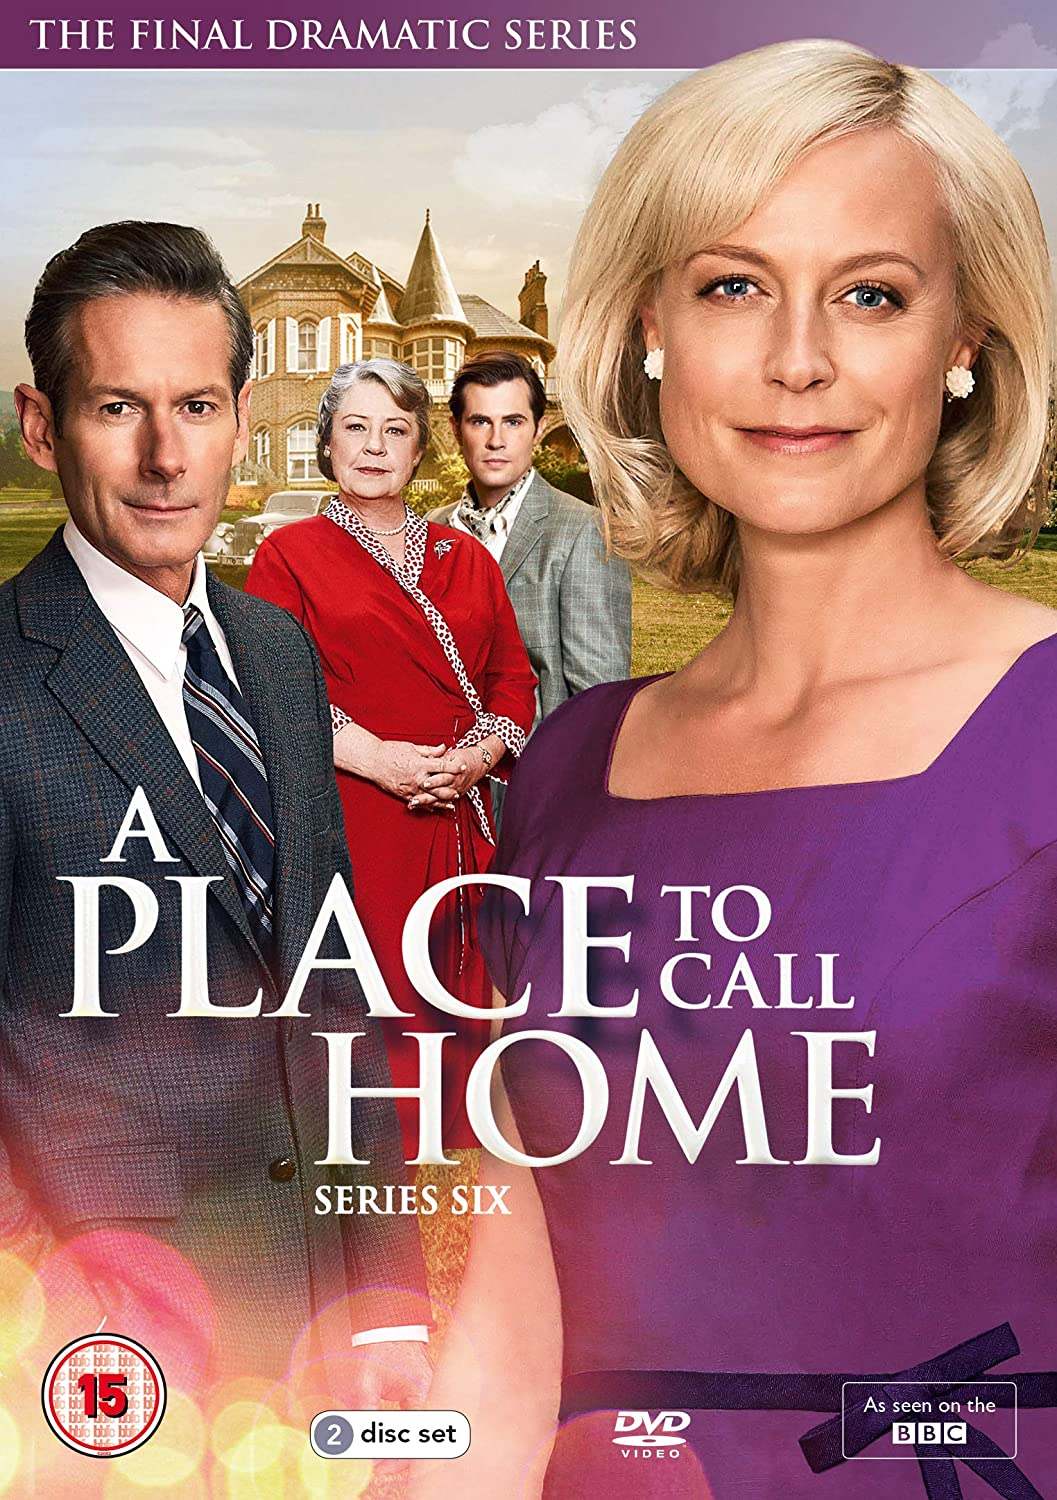 A Place to Call Home: Series Six